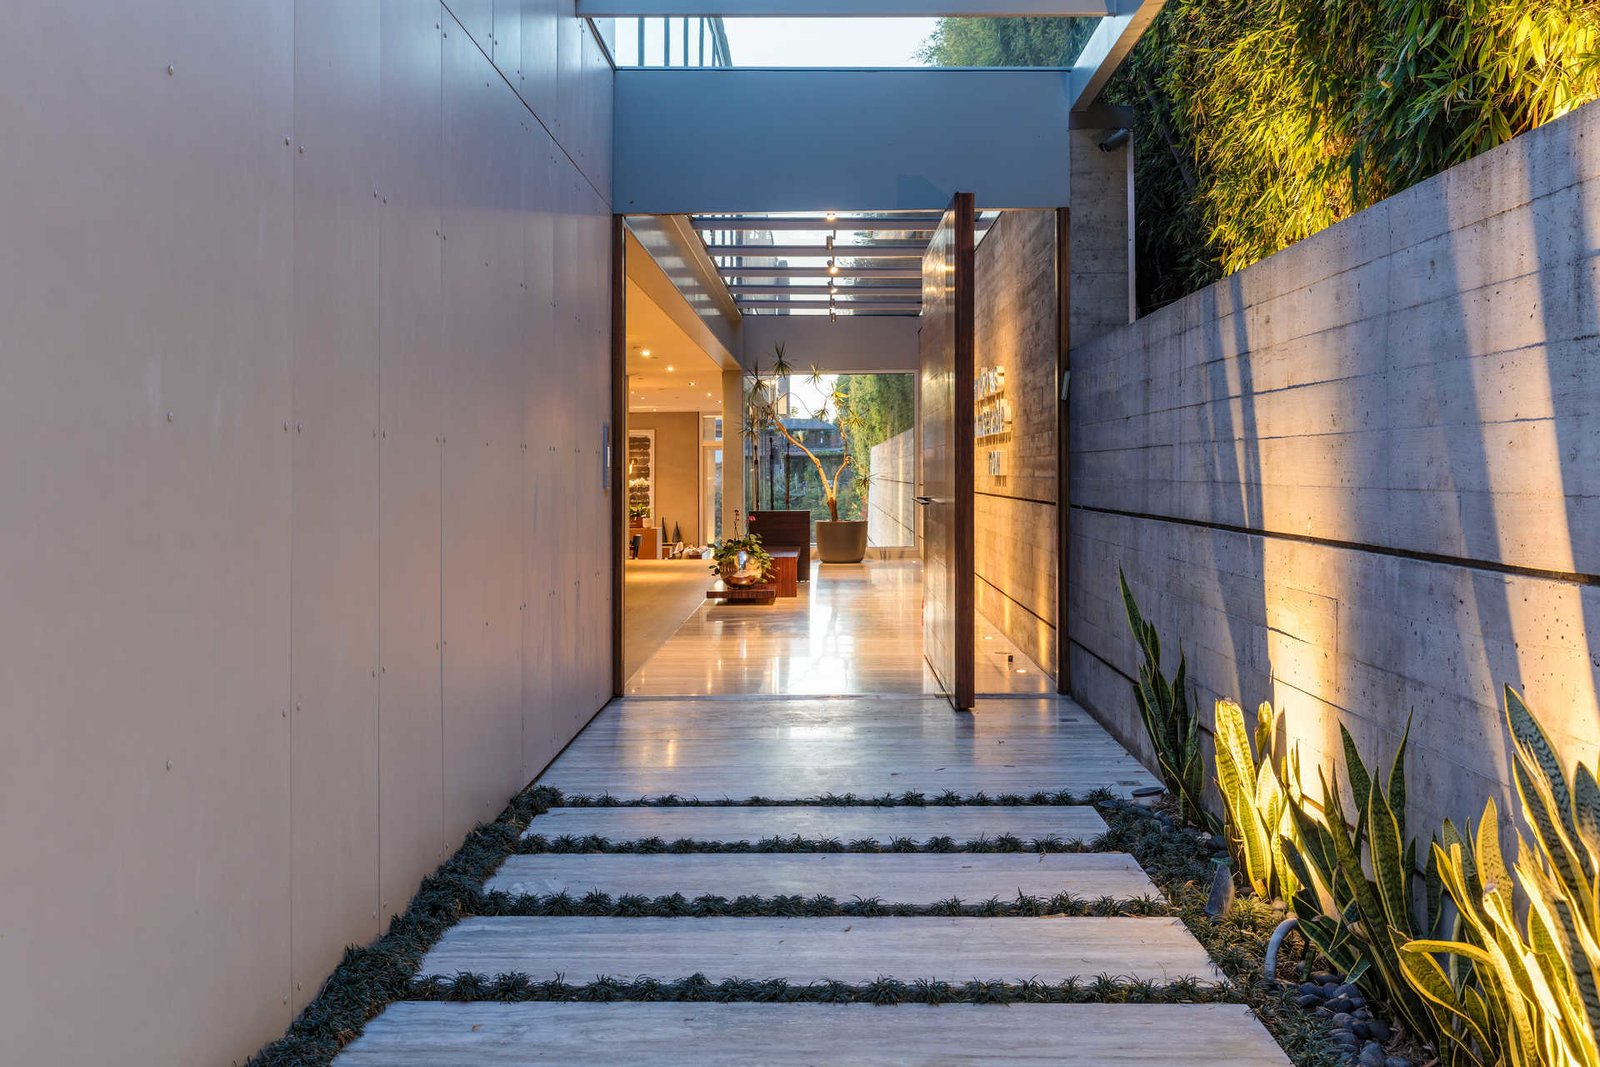 A tranquil meditation garden leads to a light-filled entrance gallery punctuated by a glass-paneled ceiling.